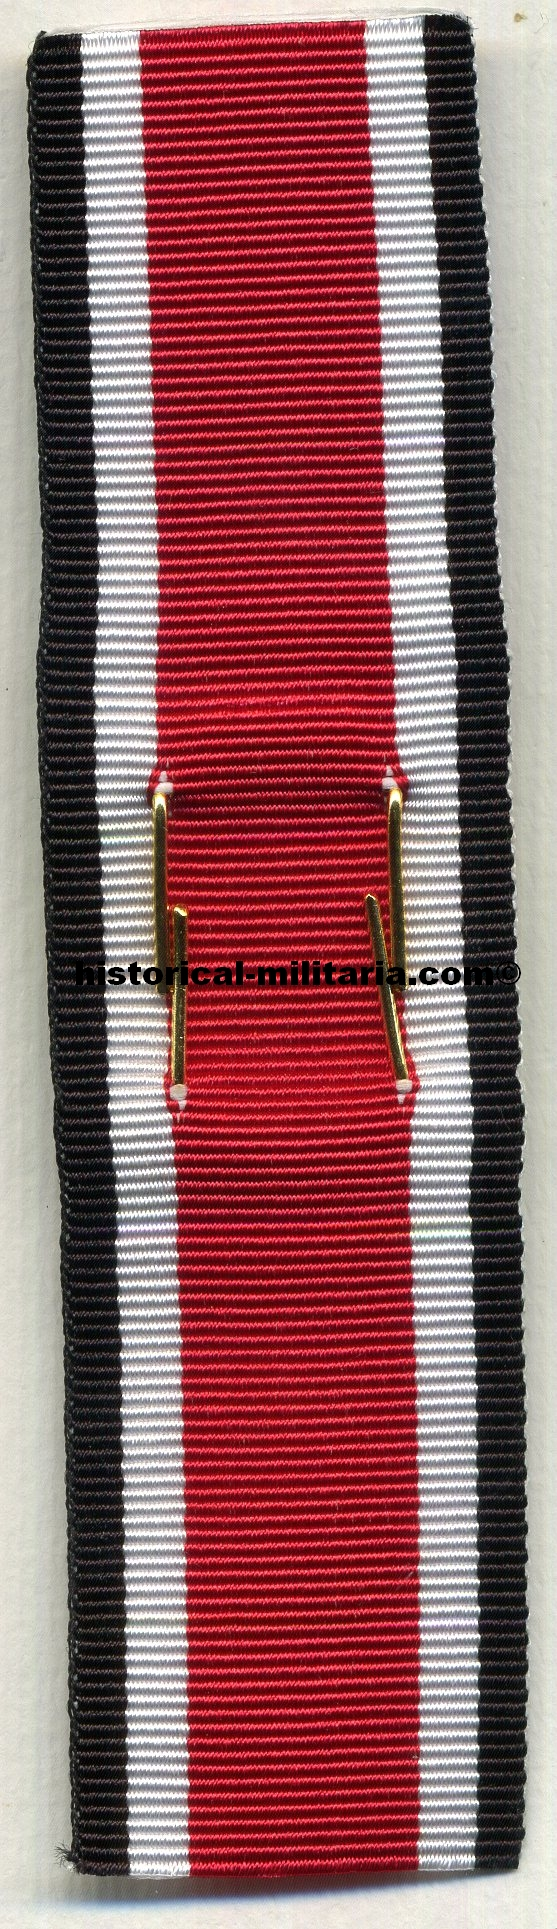 Ehrenblattspange des Heeres - Honour Roll Clasp of the German Army - L'Agrafe de la Liste d'honeur